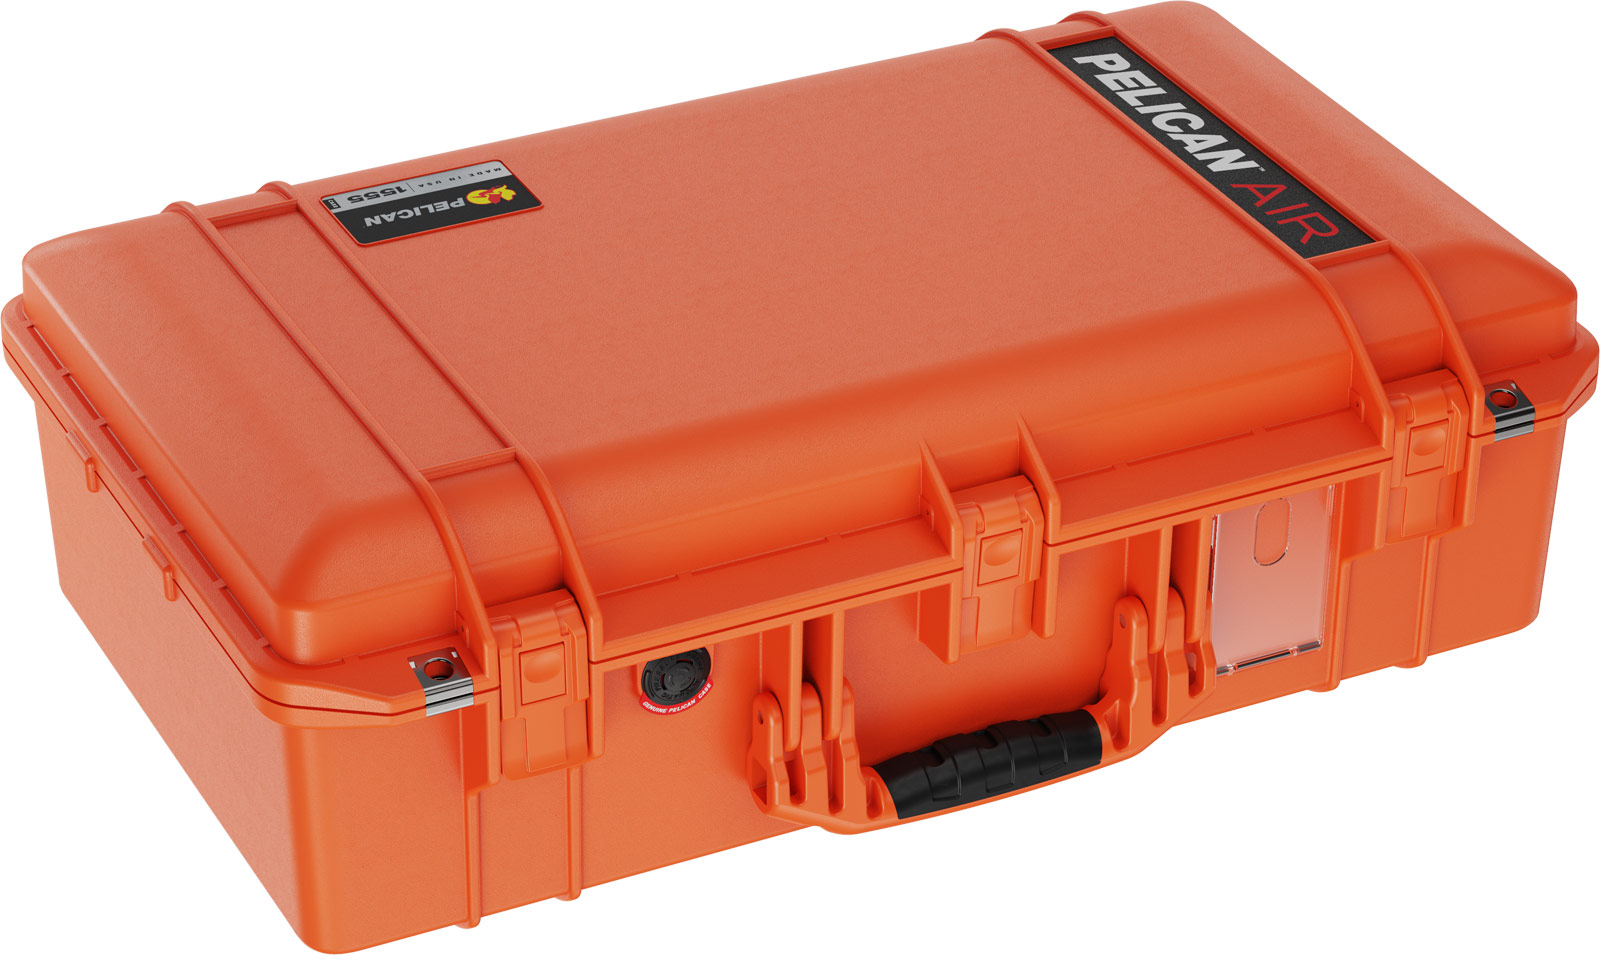 shopping pelican air 1555 buy orange case travel cases